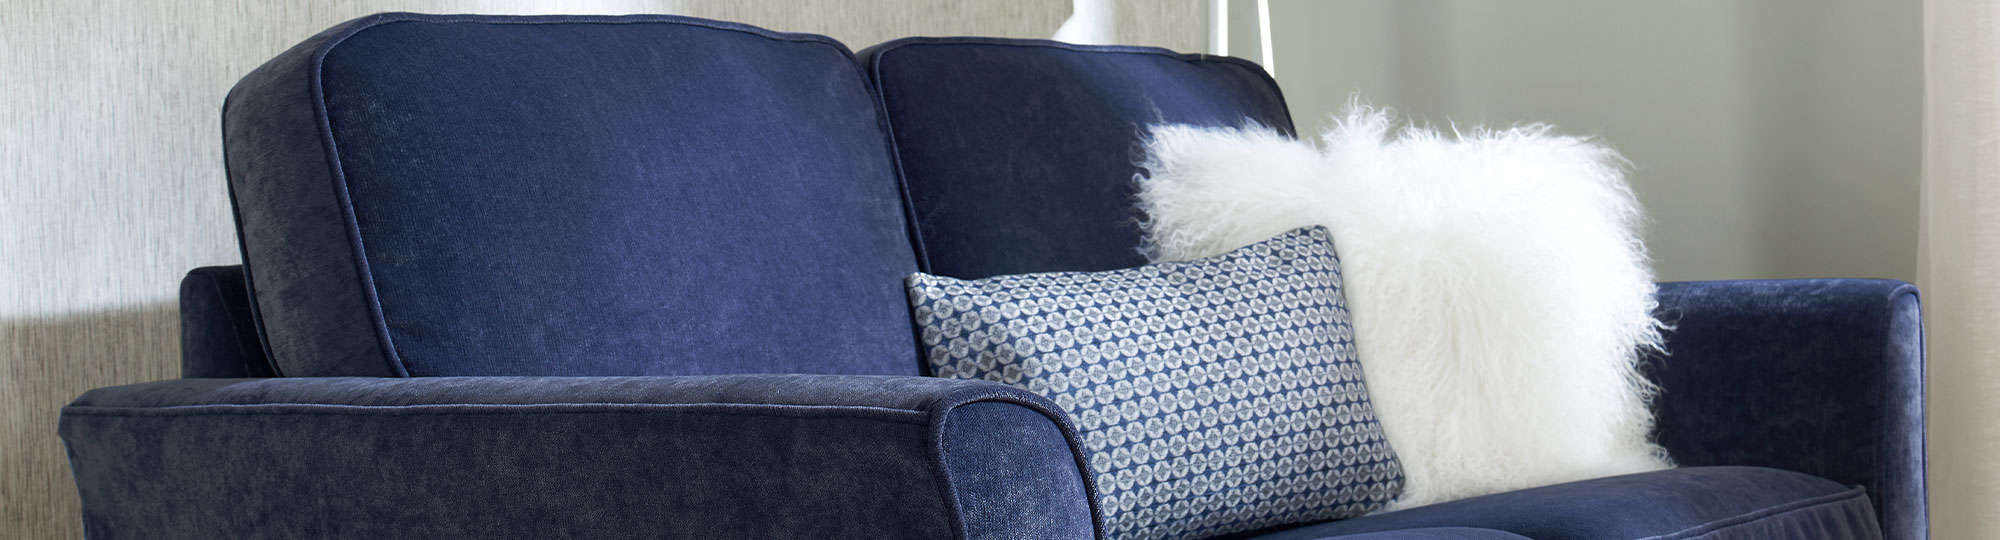 keep your family sofa clean